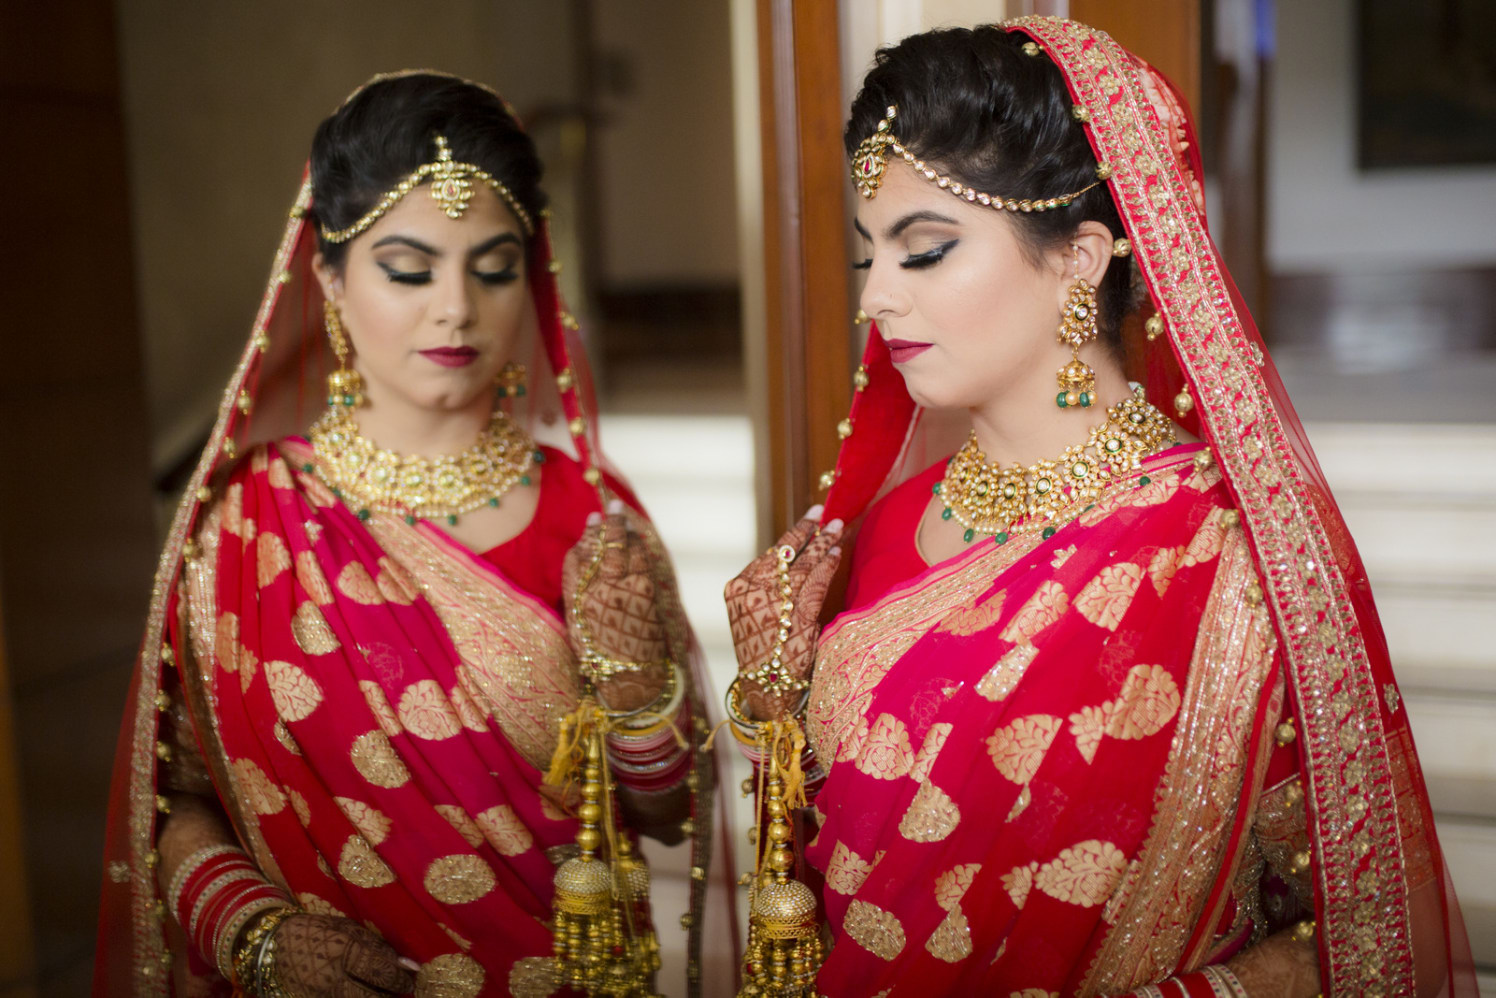 Ravishing Bride Wearing Gold Kundan Jewellery by Arpit Gulati Wedding-photography Bridal-jewellery-and-accessories Bridal-makeup | Weddings Photos & Ideas